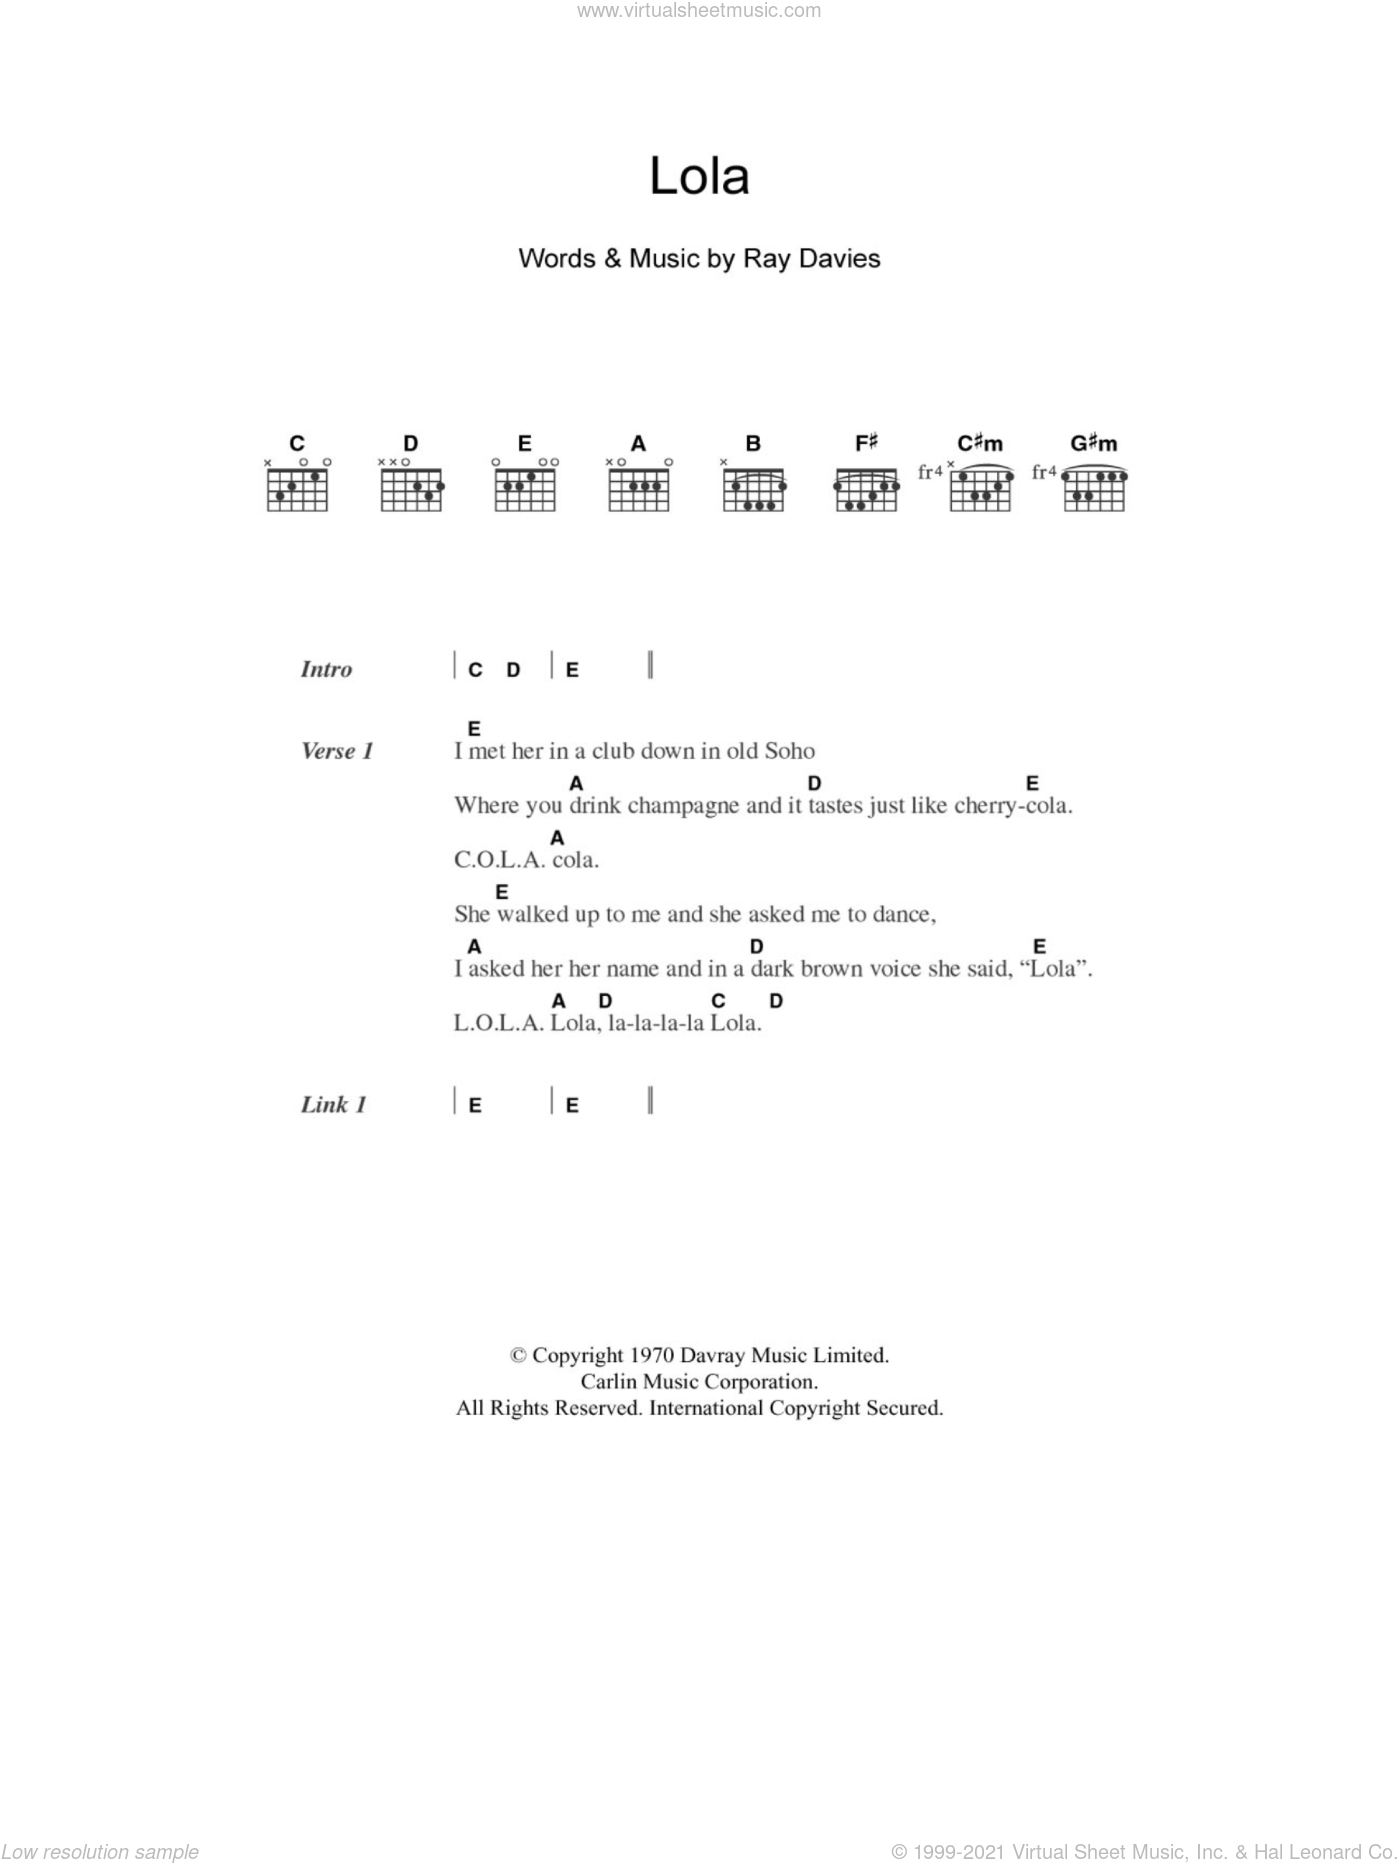 Kinks - Lola sheet music for guitar (chords) [PDF]